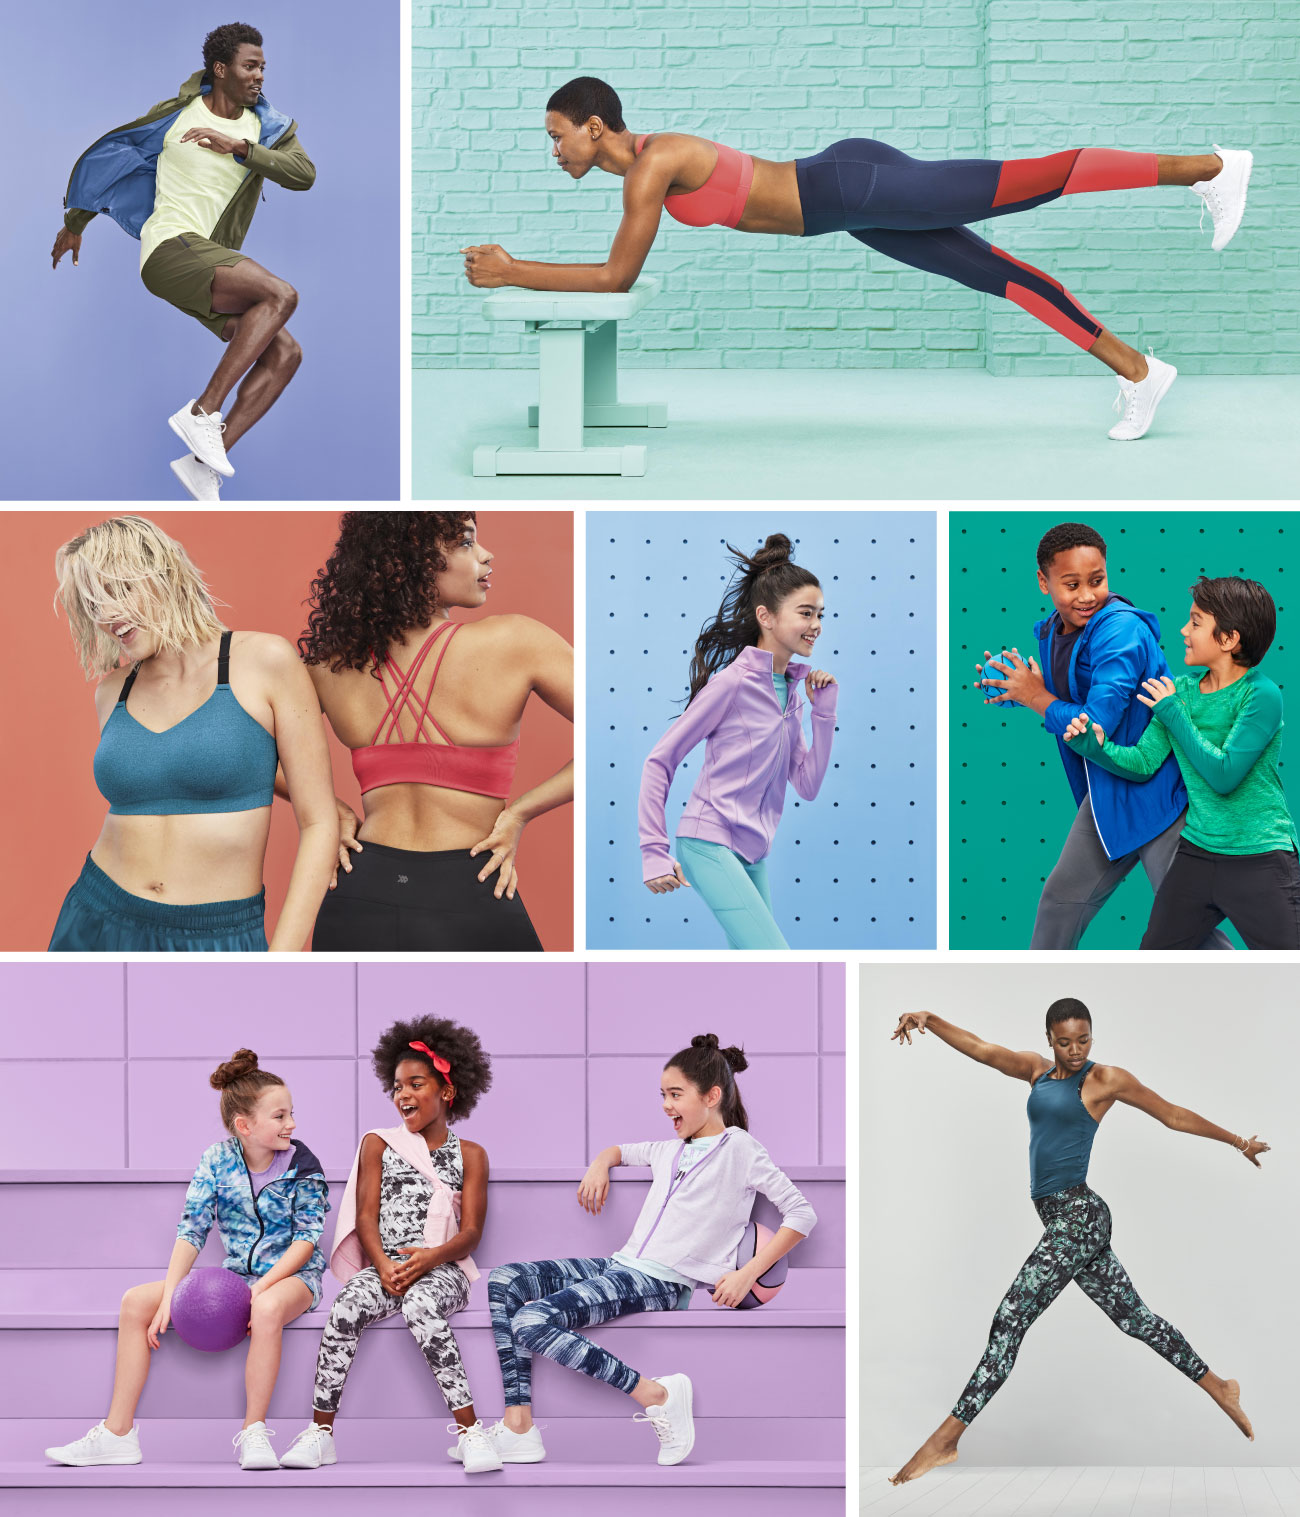 A collage of images featuring active men, women and kids wearing All in Motion activewear.